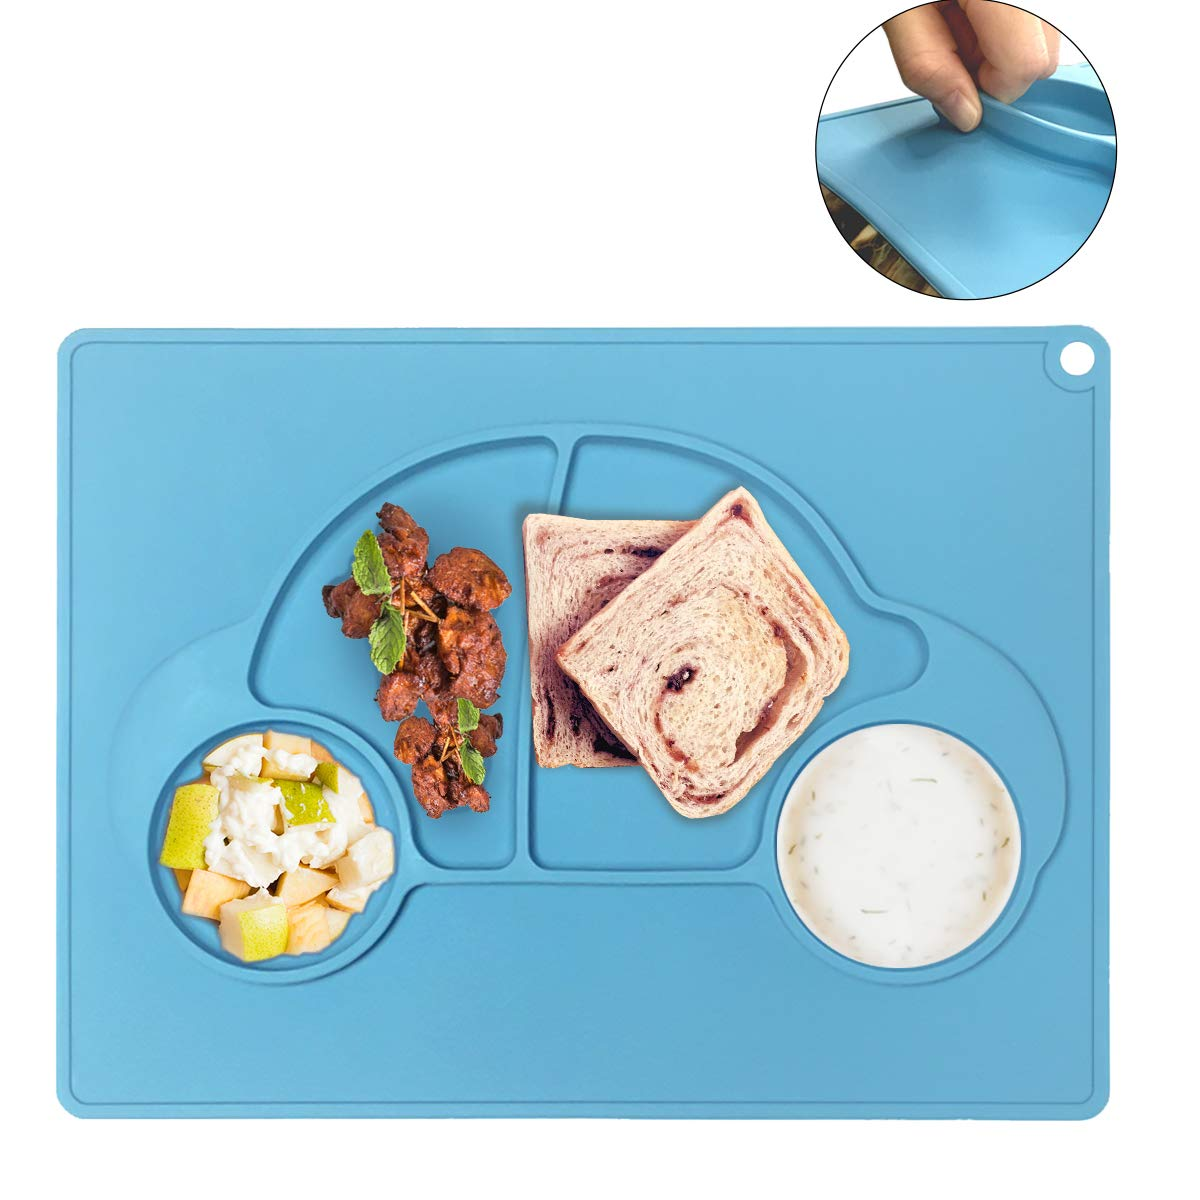 Baby Silicone Placemat, Silicone Toddler Feeding Plates